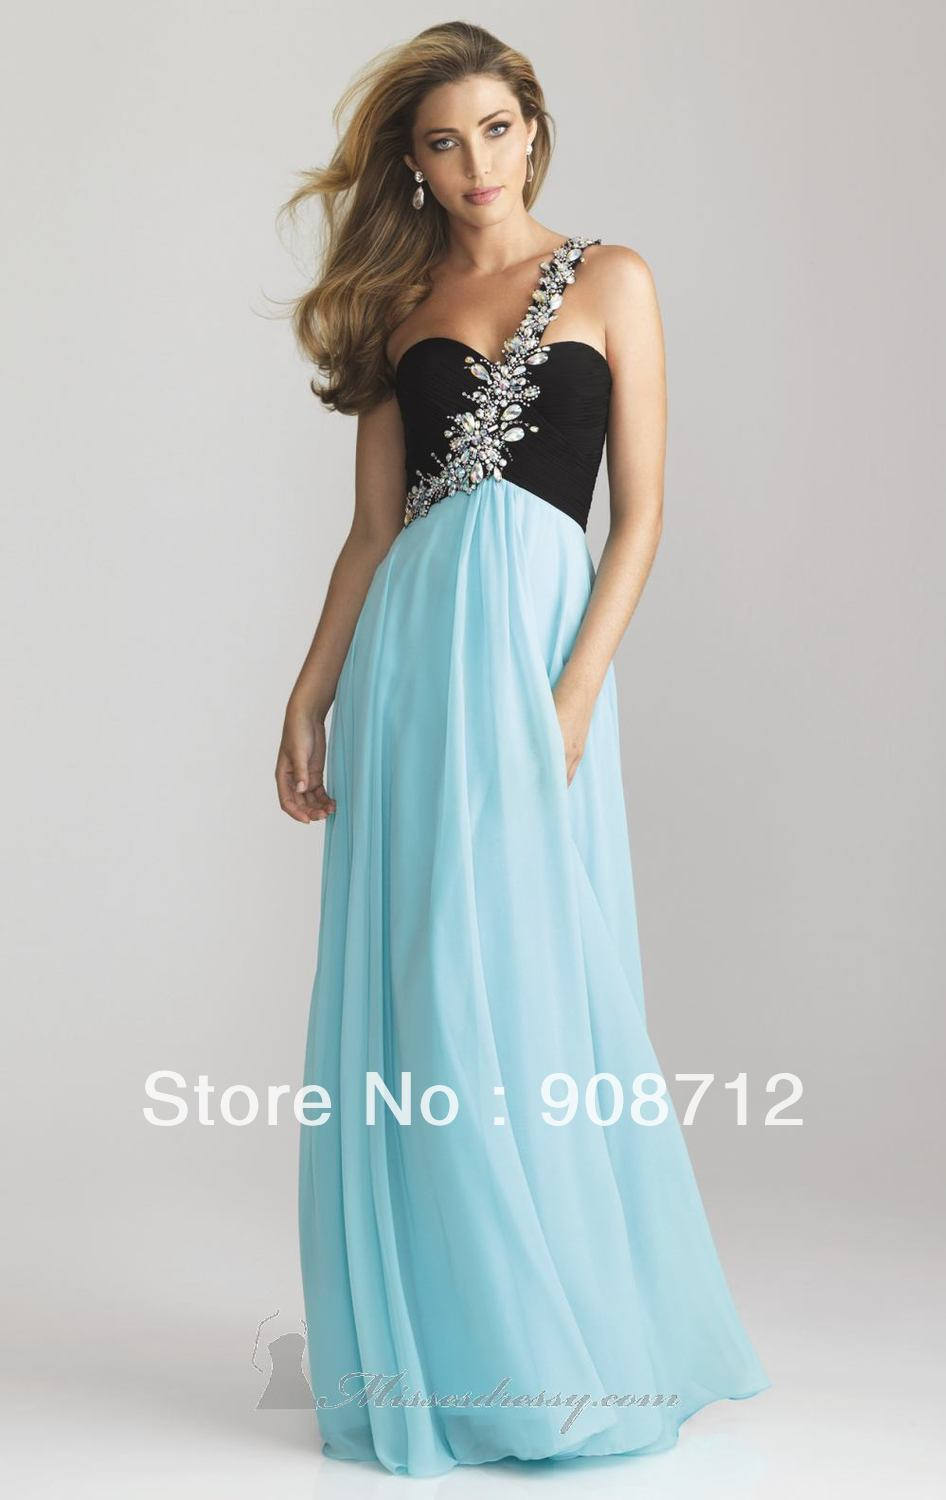 off the shoulder prom dresses 2013